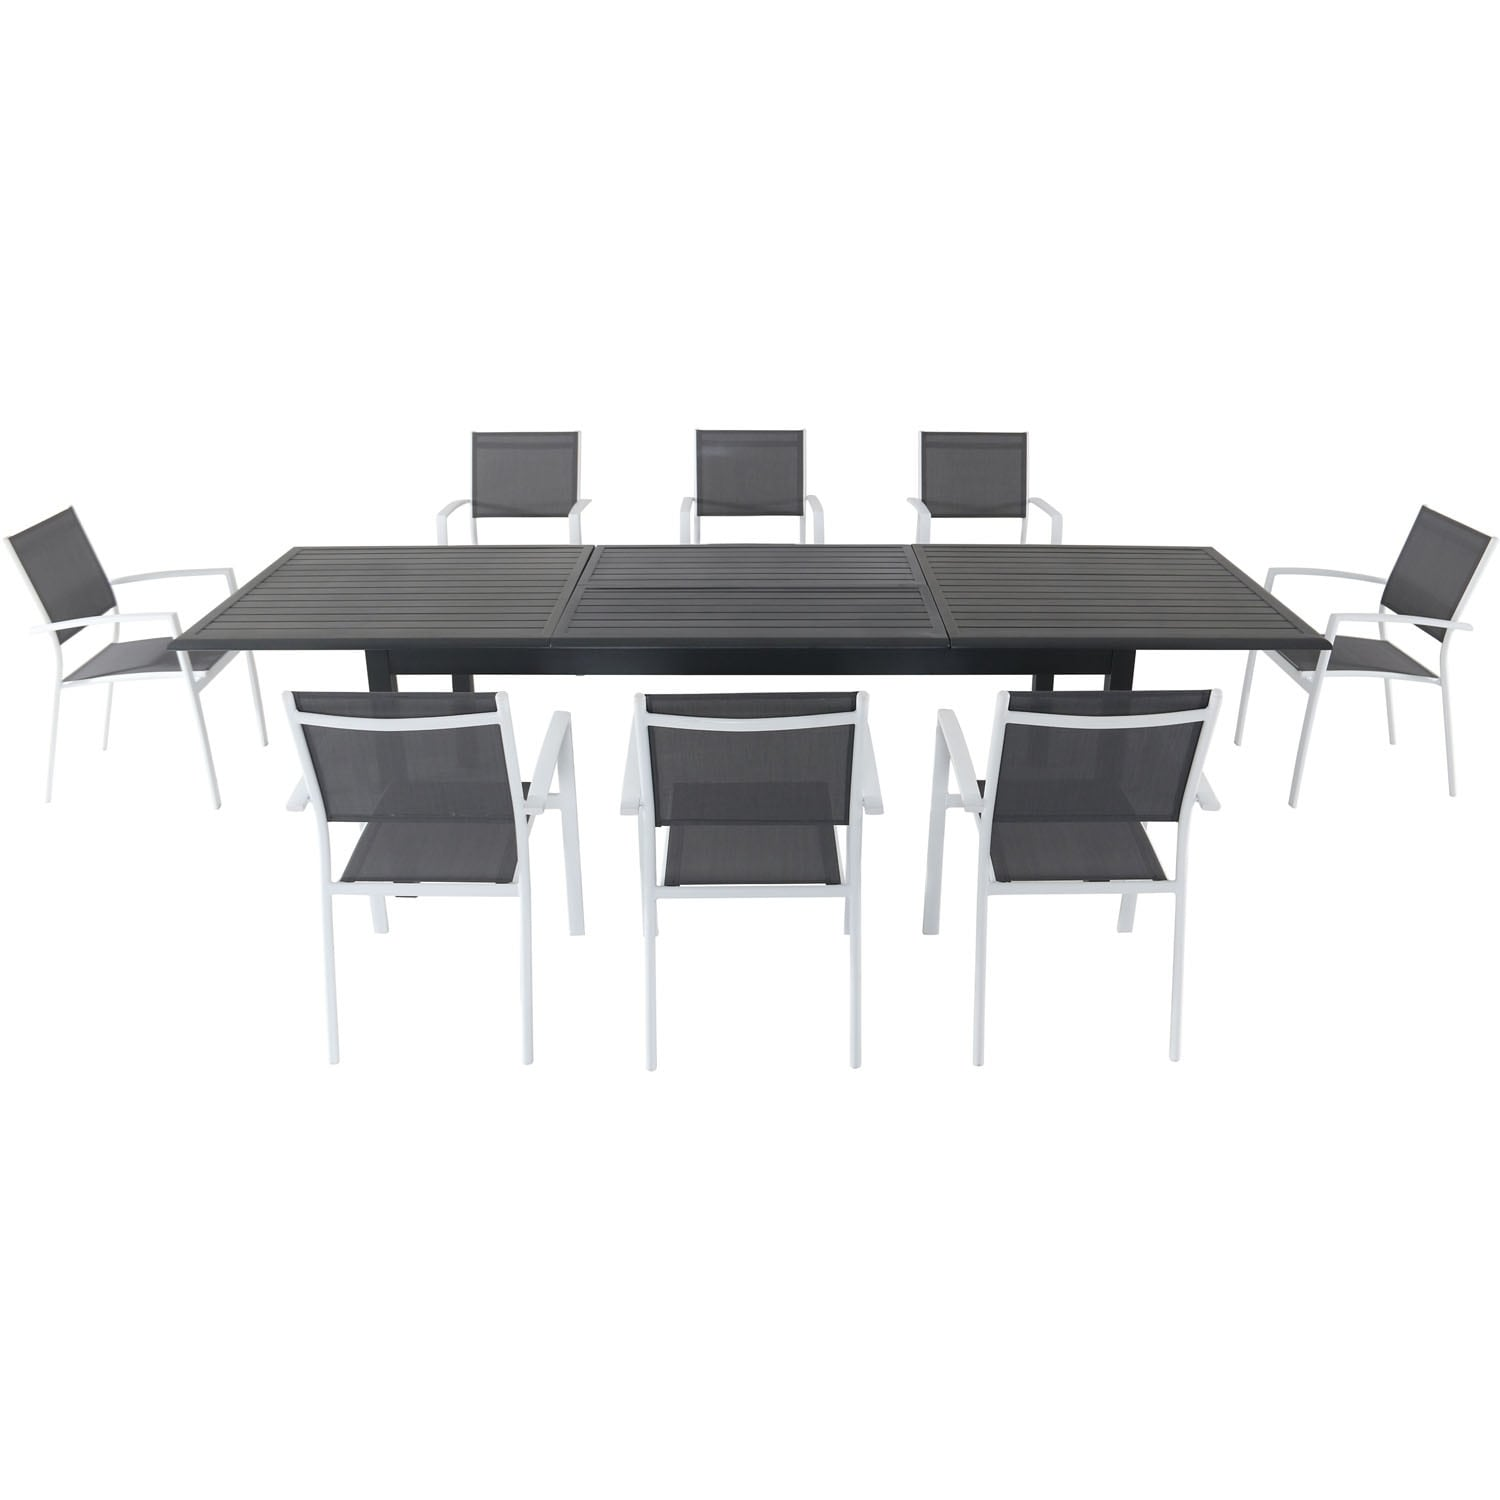 Cambridge Byrn 9-Piece Dining Set with 8 Sling Chairs and an Expandable 40 x 118 Table